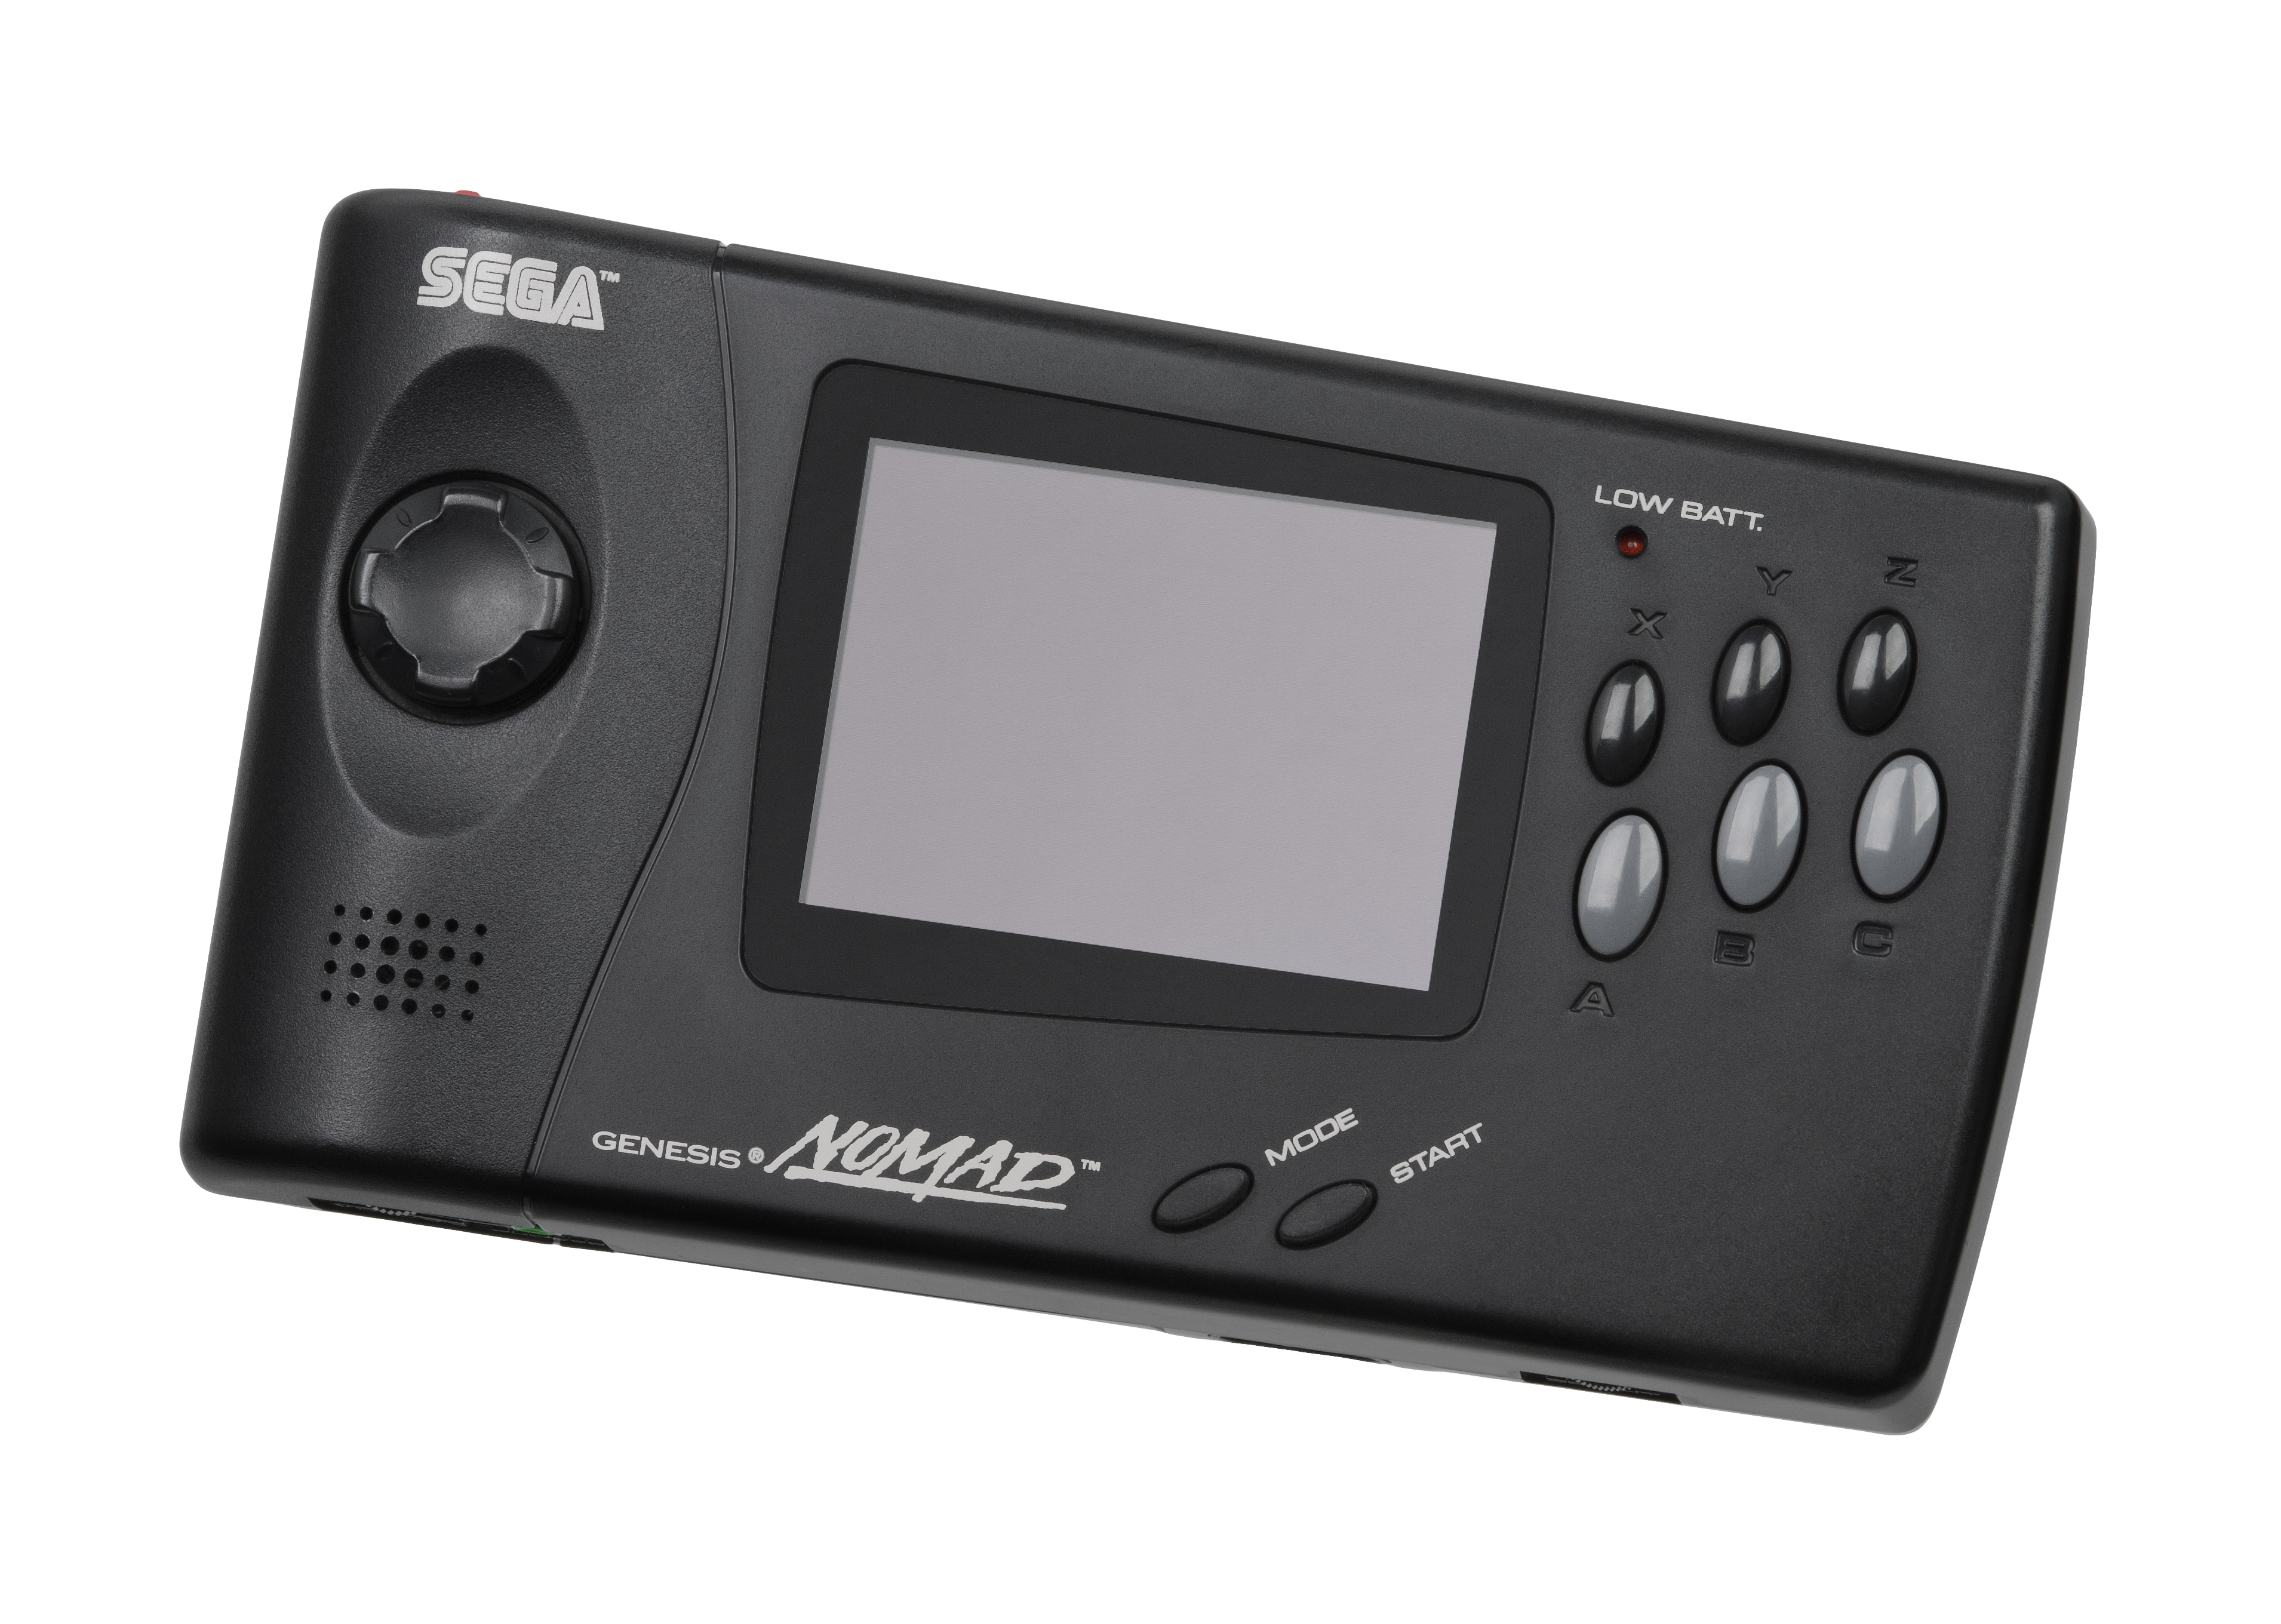 Fifth generation of video game consoles